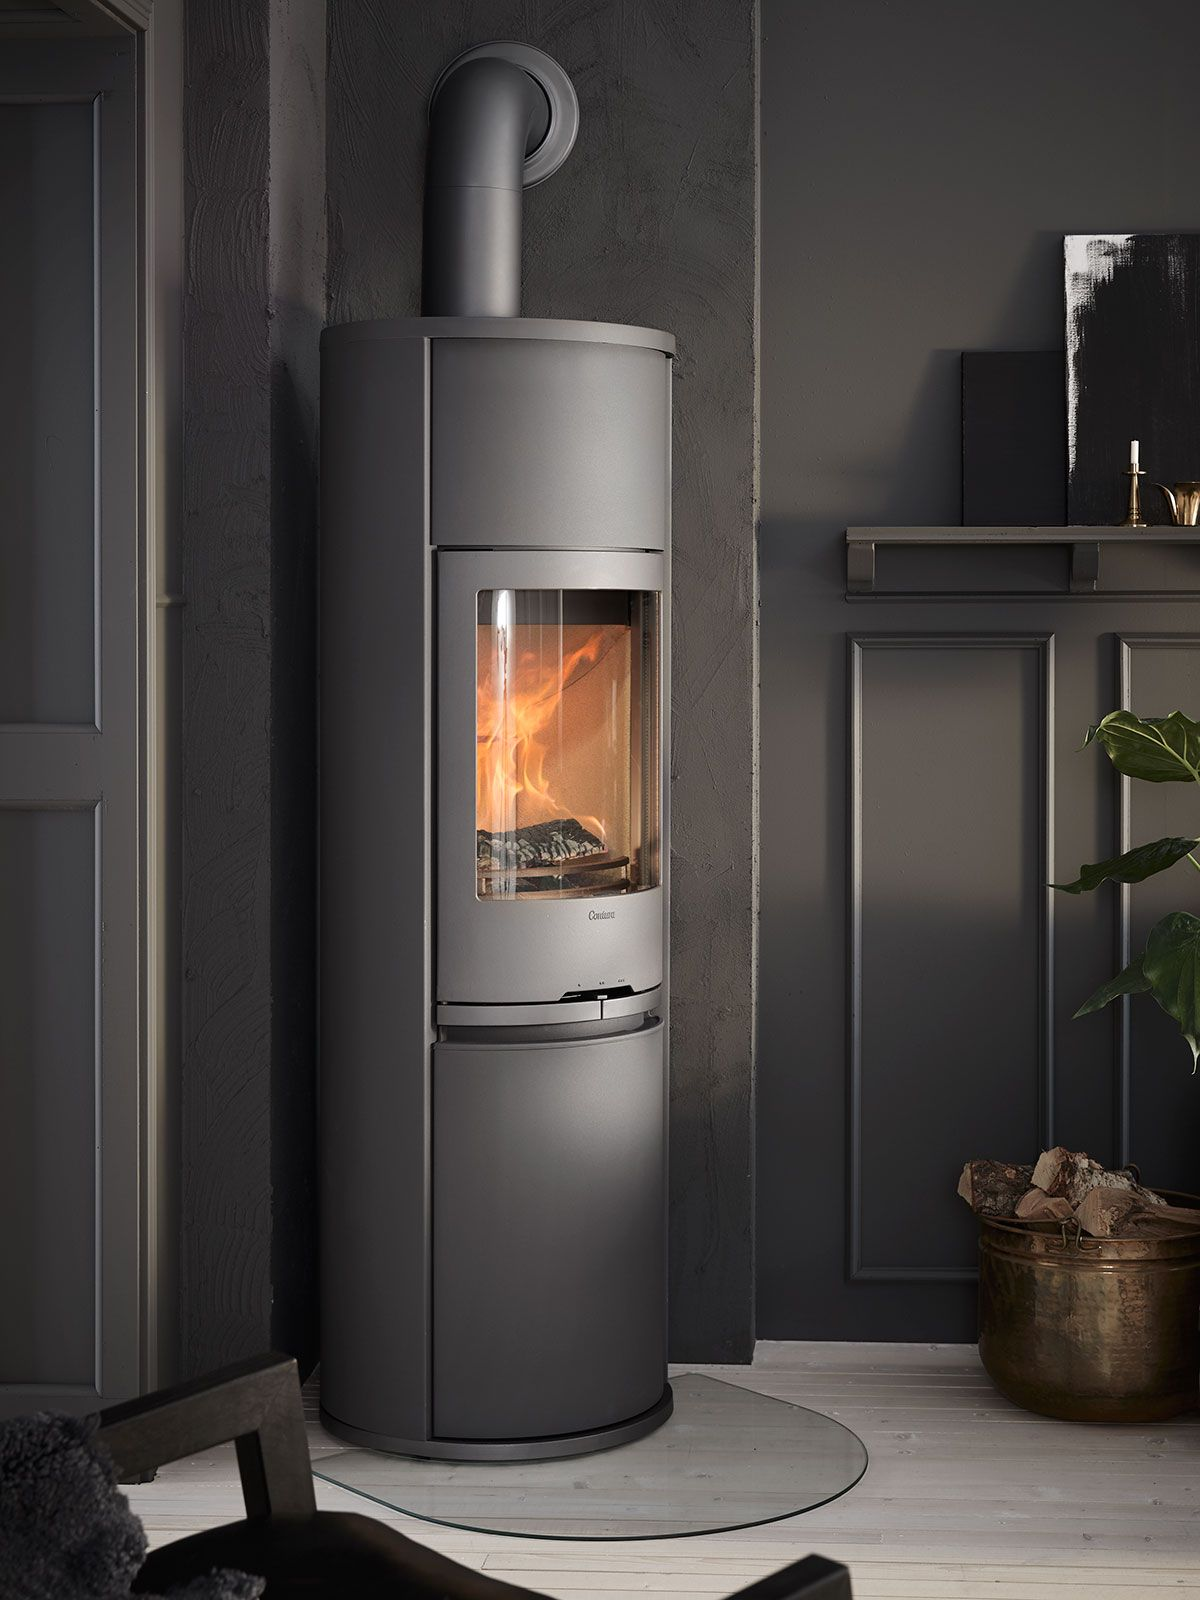 Kaminofen Contura 620 T Contura 690 Style In Grey With Cast Iron Door Available